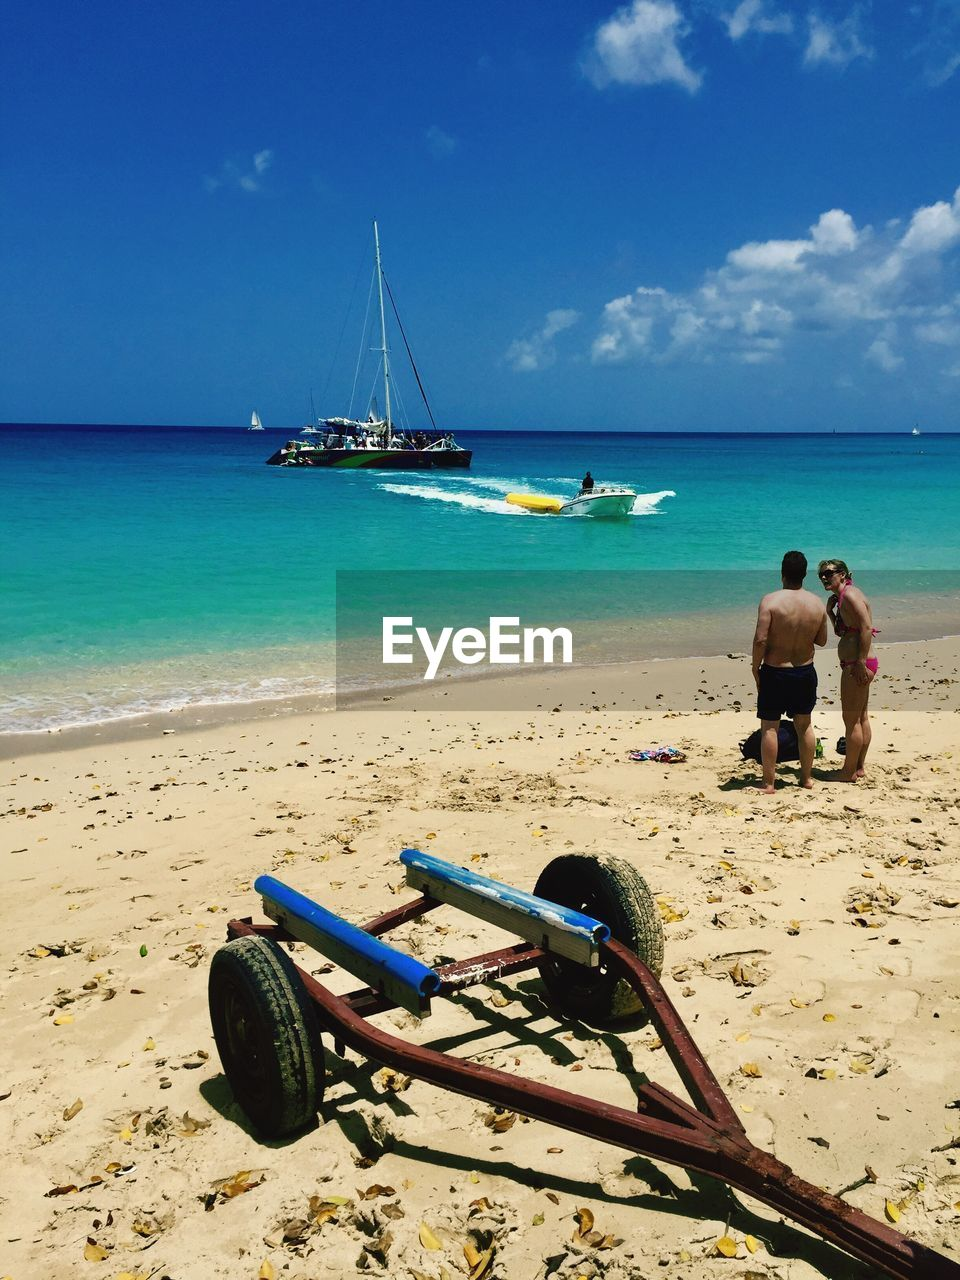 sea, beach, sand, horizon over water, water, shore, sky, day, nature, cloud - sky, rear view, real people, transportation, outdoors, beauty in nature, scenics, men, vacations, full length, nautical vessel, people